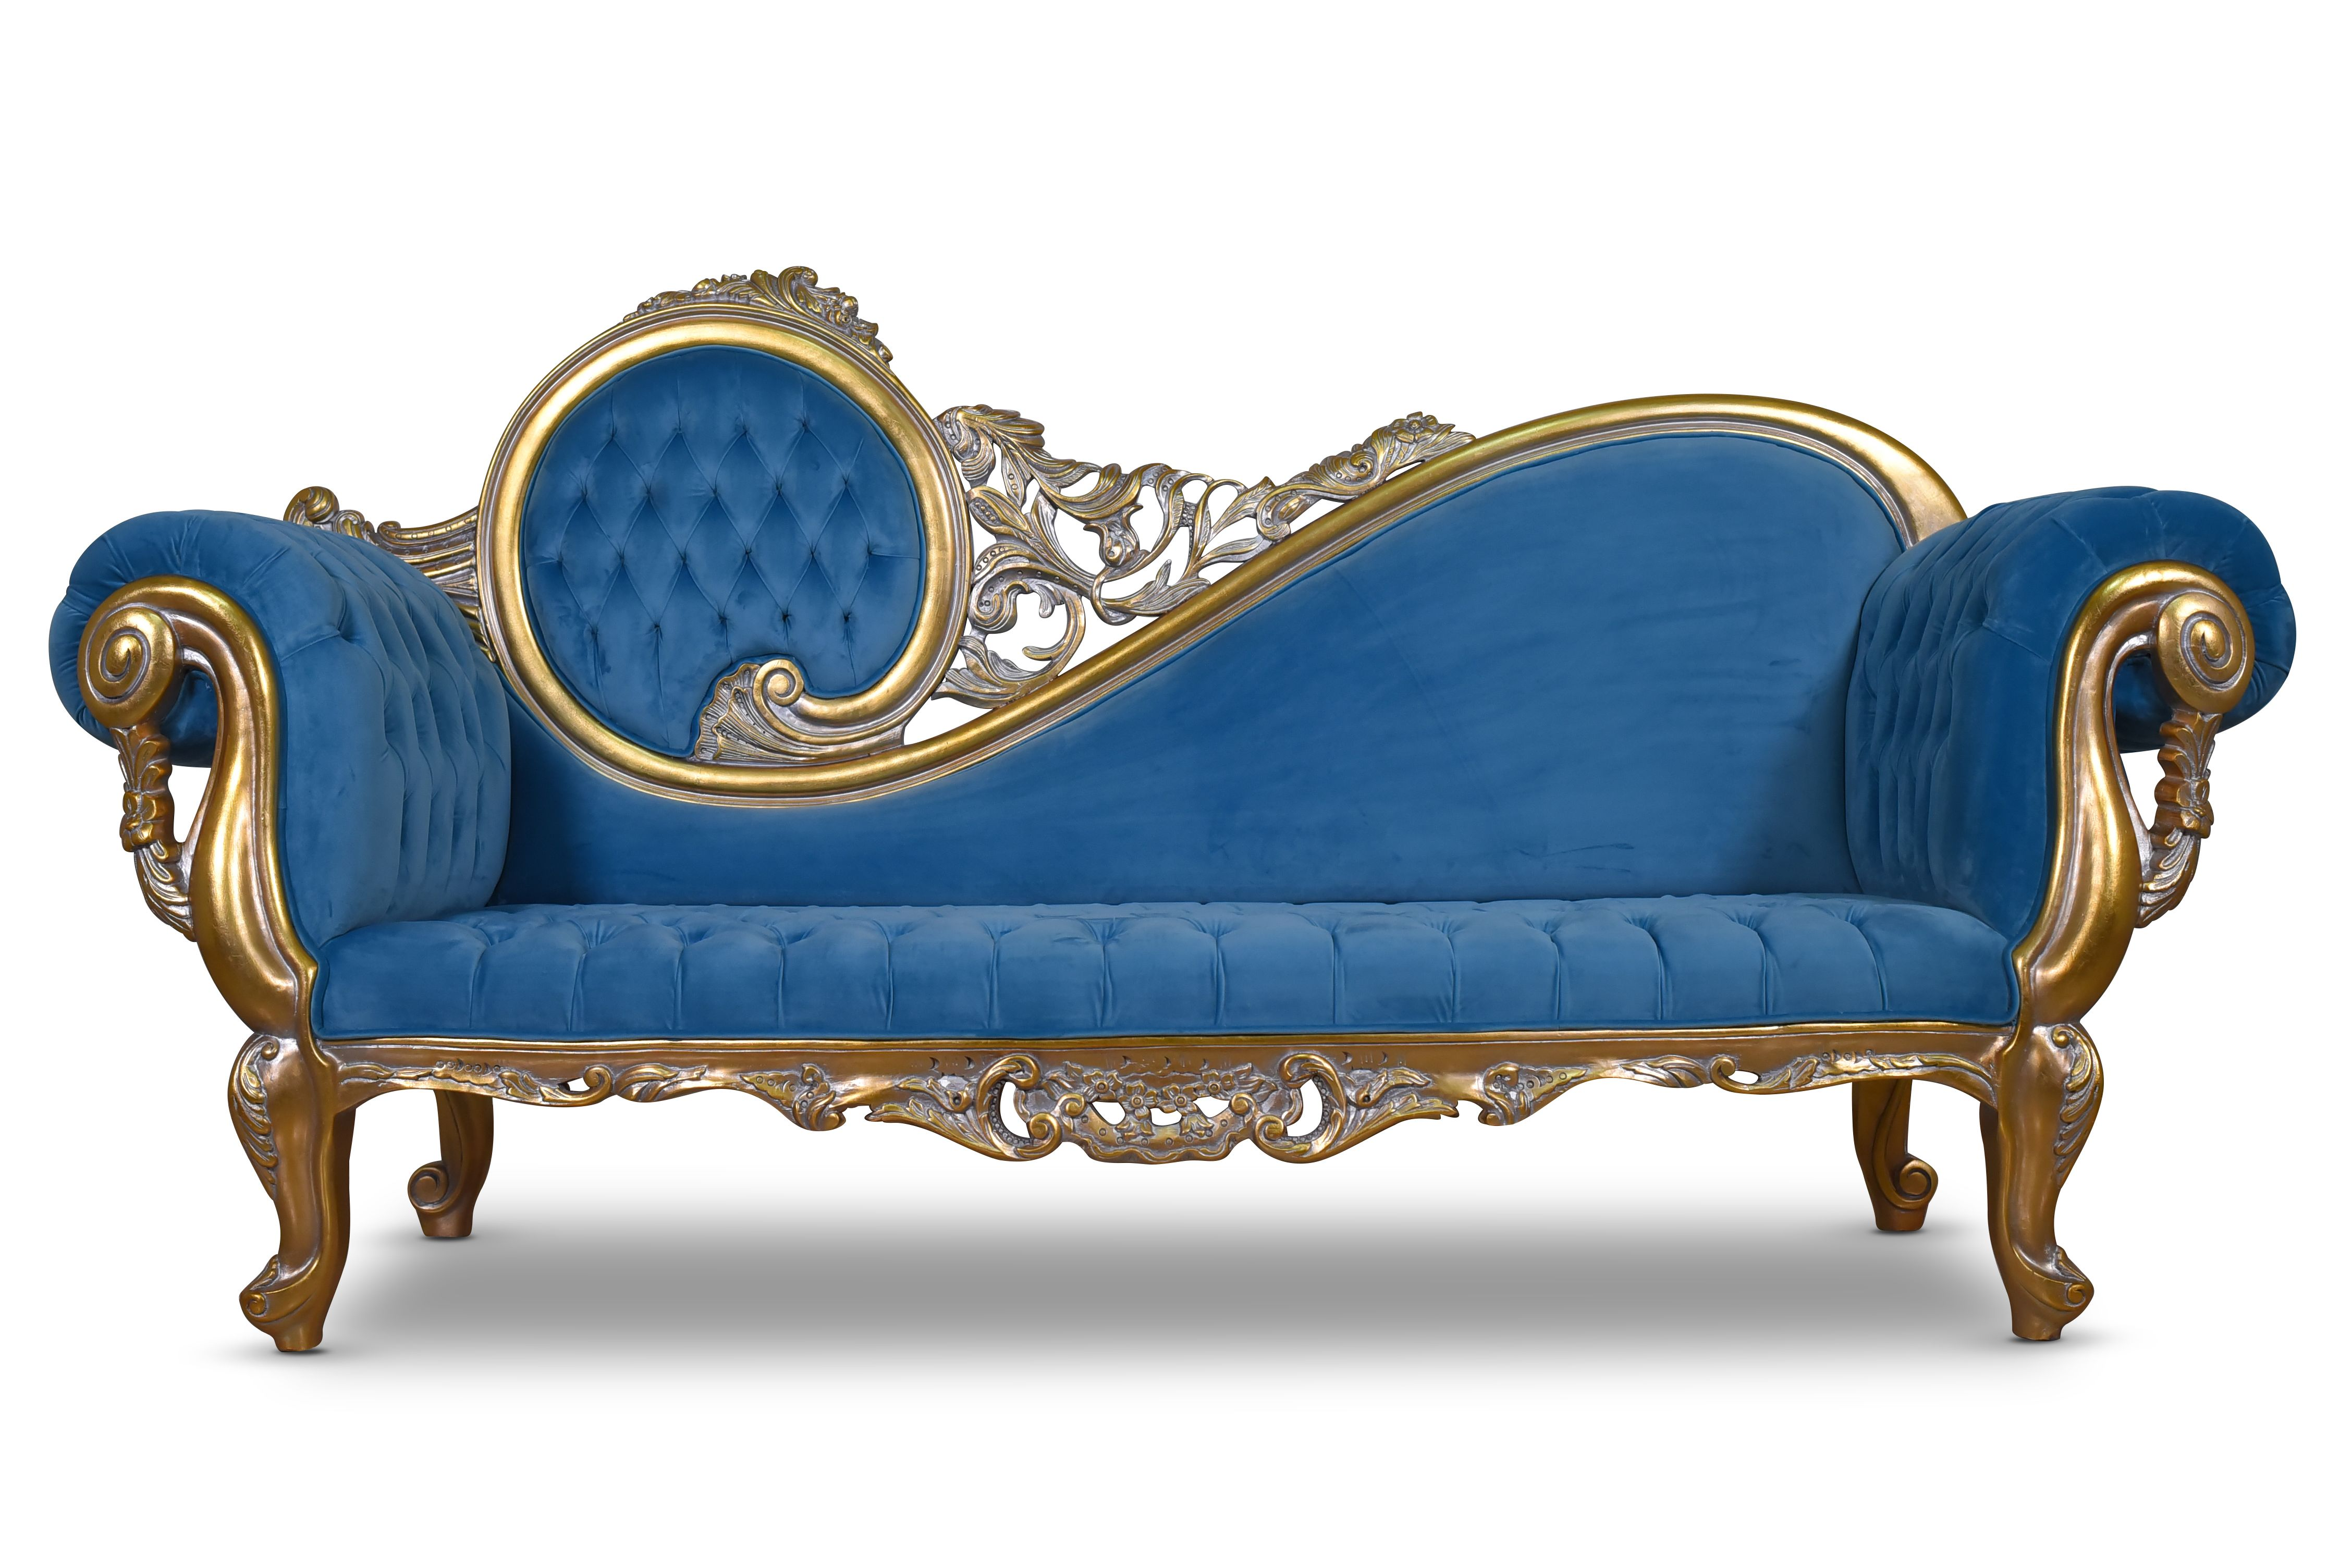 Citronelle Victorian Style Gold Leaf Tufted Blue Velvet Chaise Lounge Silvanus Handmade Furniture Victorian Furniture Vintage Furniture Makeover Chaise Lounge